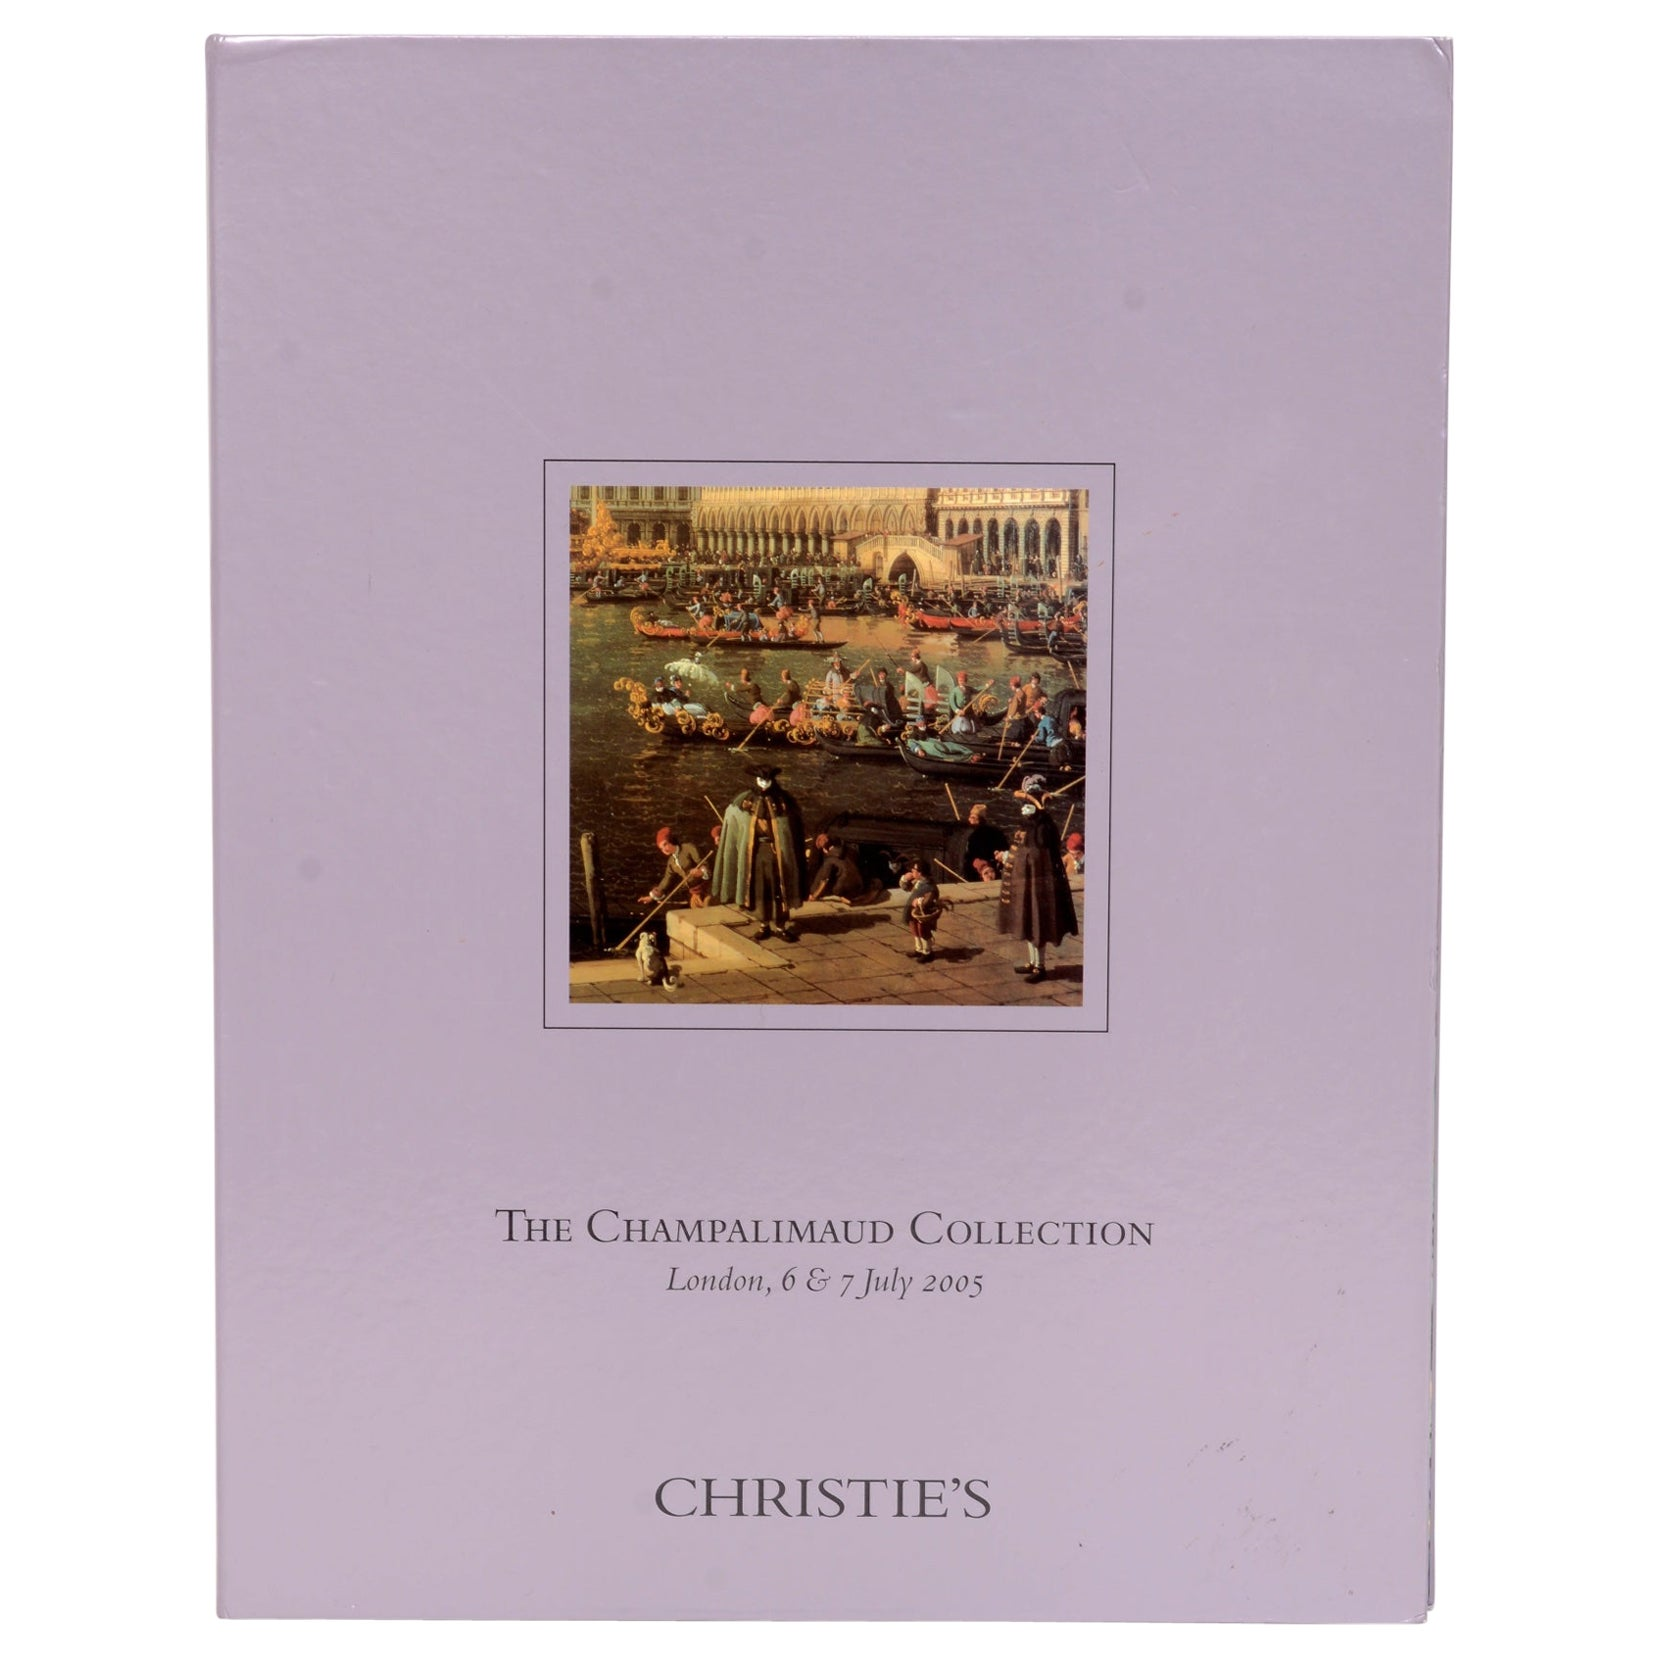 Christie's Champalimaud Collection London, 6 & 7 July 2005, First Edition